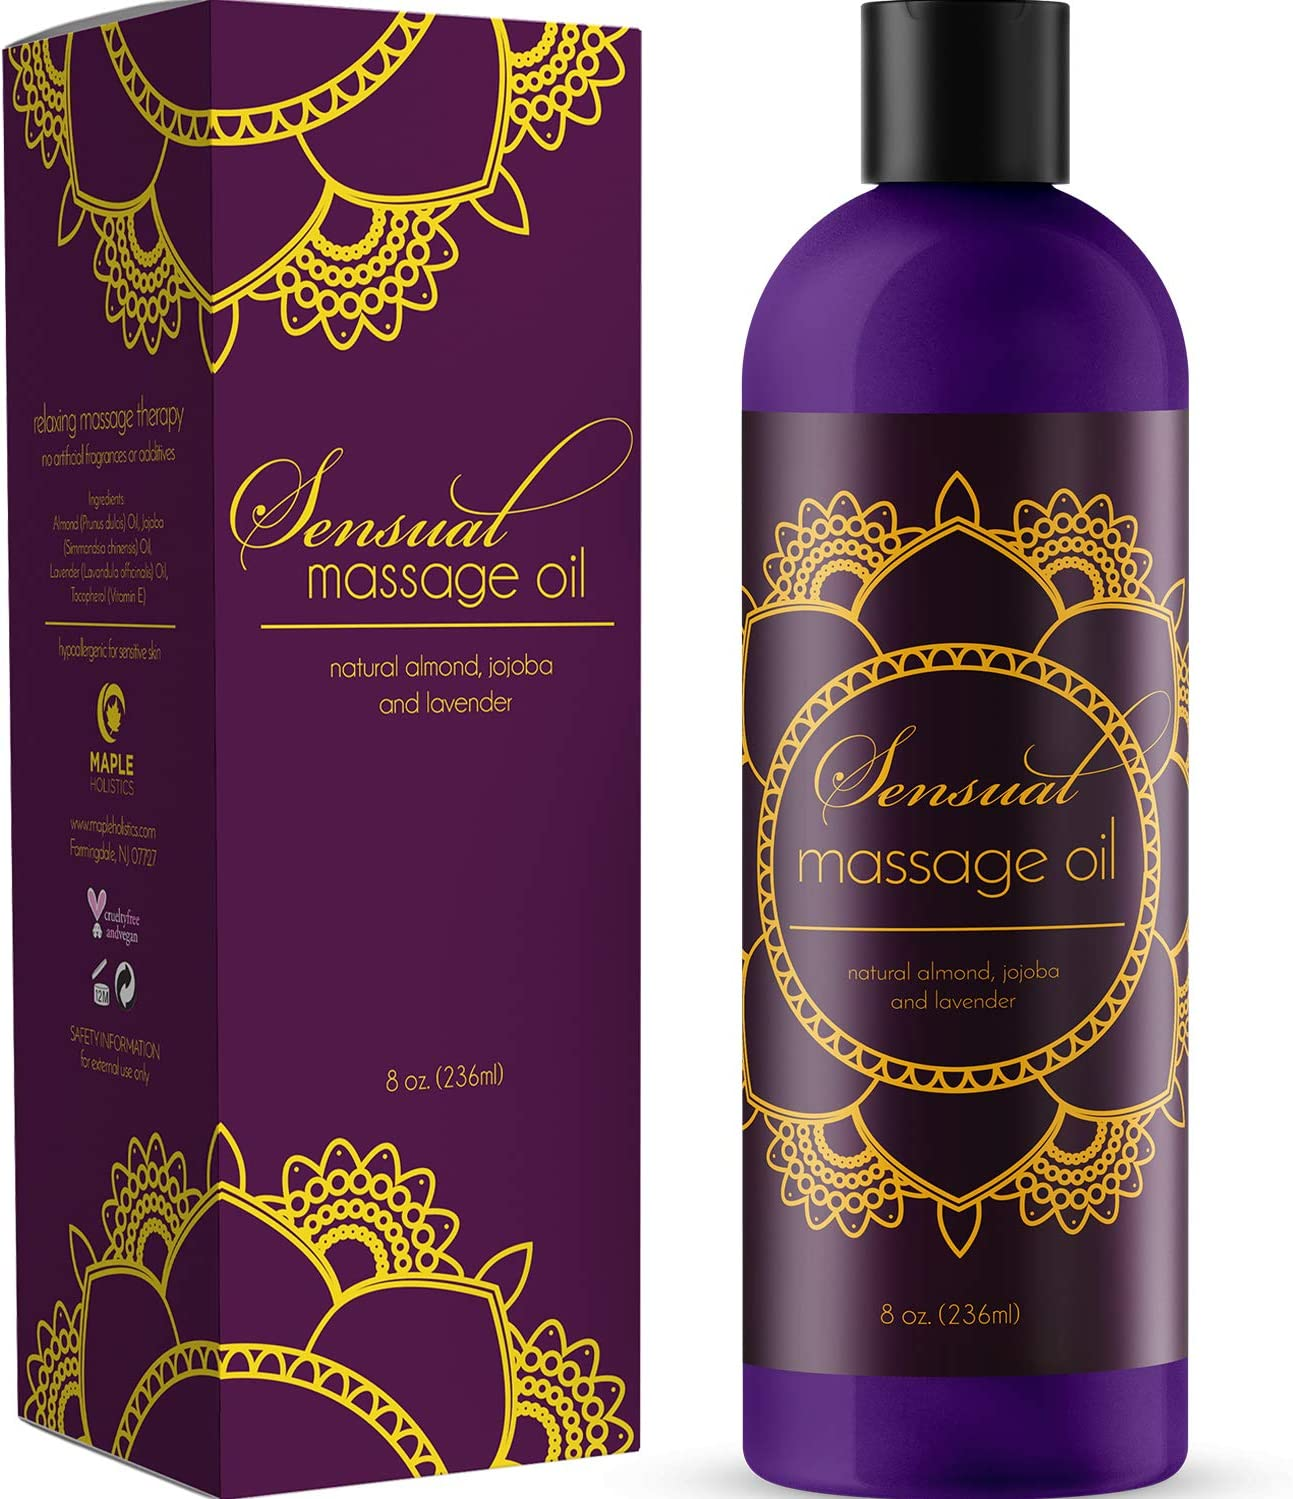 Sensual Massage Oil with Relaxing Lavender Almond Oil and Jojoba for Men and Women – 100% Natural Hypoallergenic Skin Therapy with No Artificial or Added Ingredients - Made by Maple Holistics: Health & Personal Care